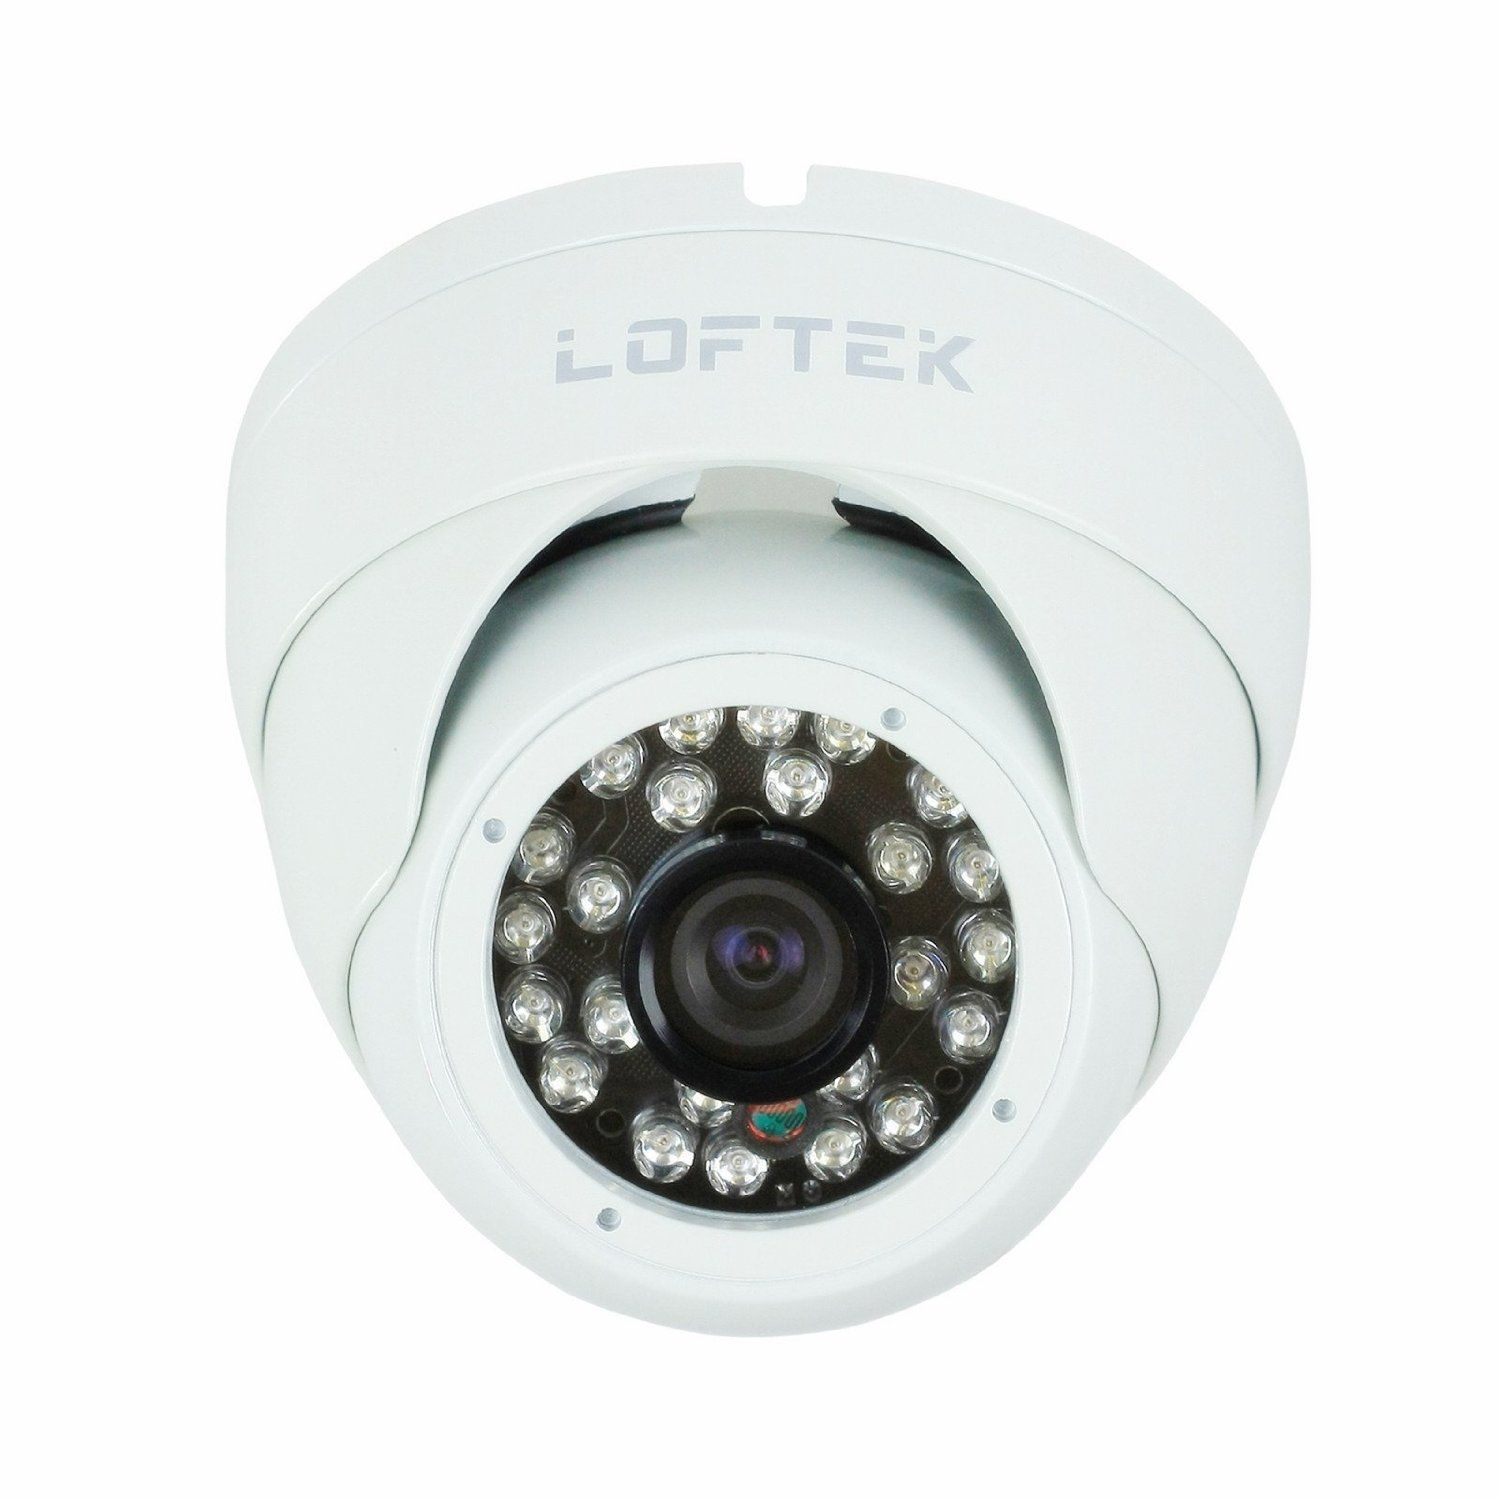 LOFTEK® Conch-shaped dome 24 Infrared LEDs Day/Night Vision Security CCTV Camera Color CCD Video camera Sony 420TVL 3.6mm Wide View Angle Lens. built with high-quality metal housing . White.  http://www.amazon.com/LOFTEK%C2%AE-Conch-shaped-Infrared-Security-high-quality/dp/B007RIXBKE/ref=aag_m_pw_dp?ie=UTF8=A23TNQB4GVF91M